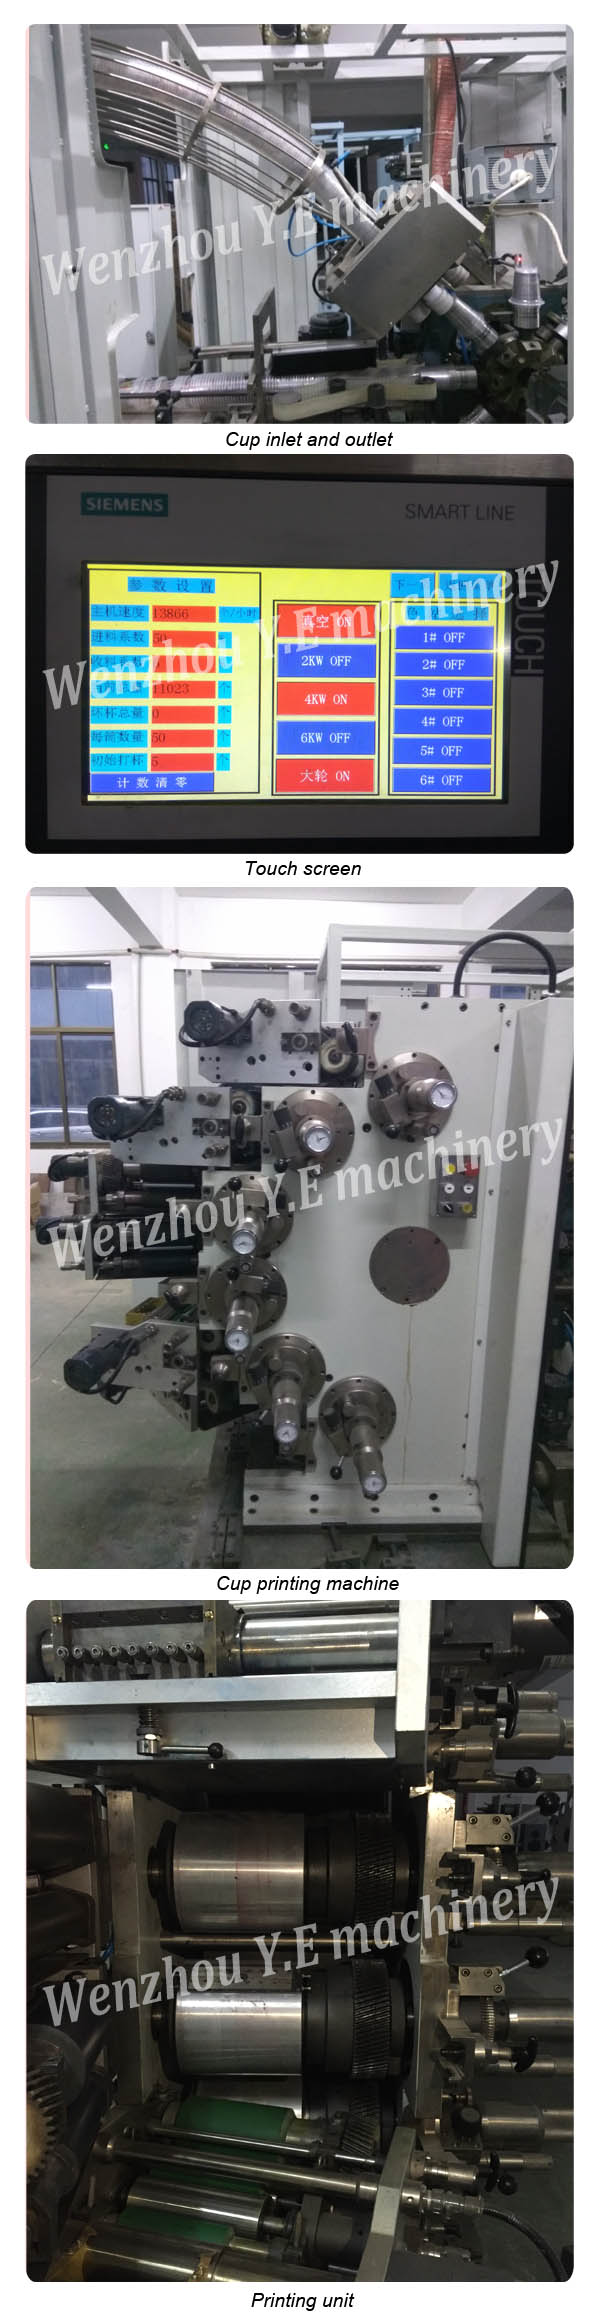 Cup Offset Printing Machine